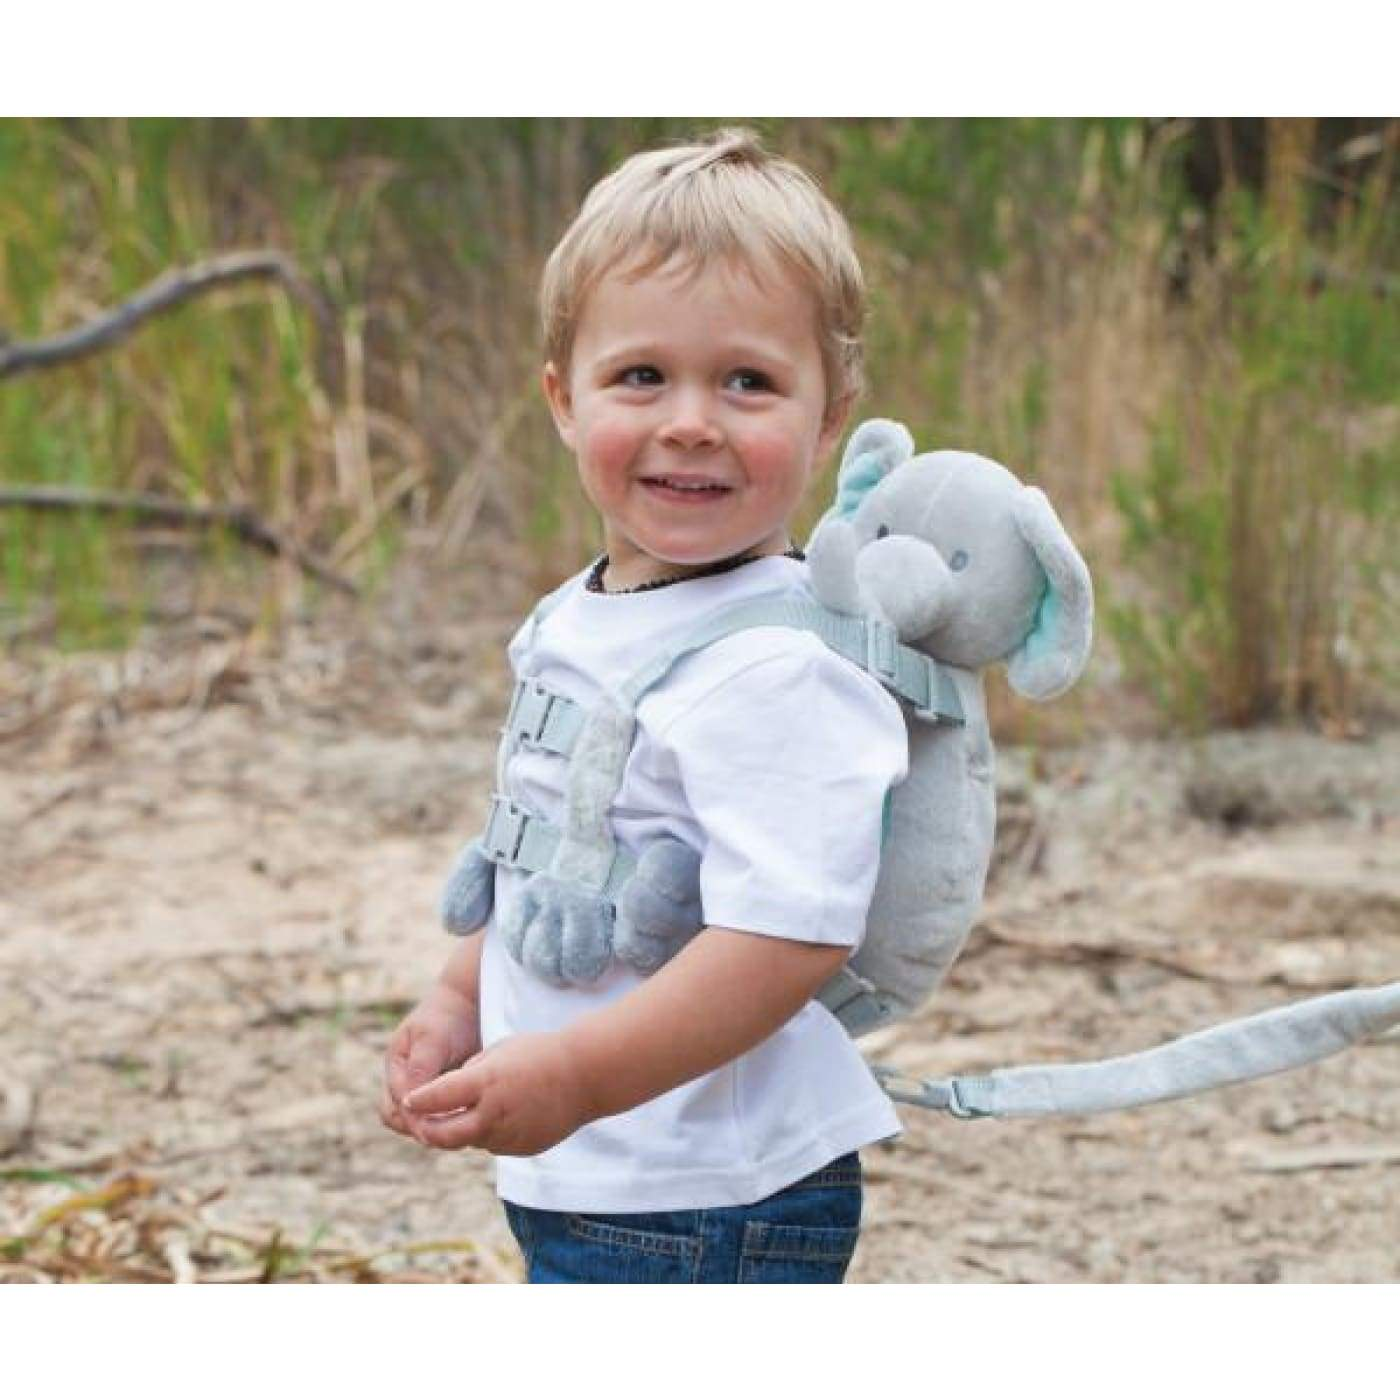 Playette 2 in 1 Harness Buddy - Fluffy Puppy - ON THE GO - SAFETY HARNESSES